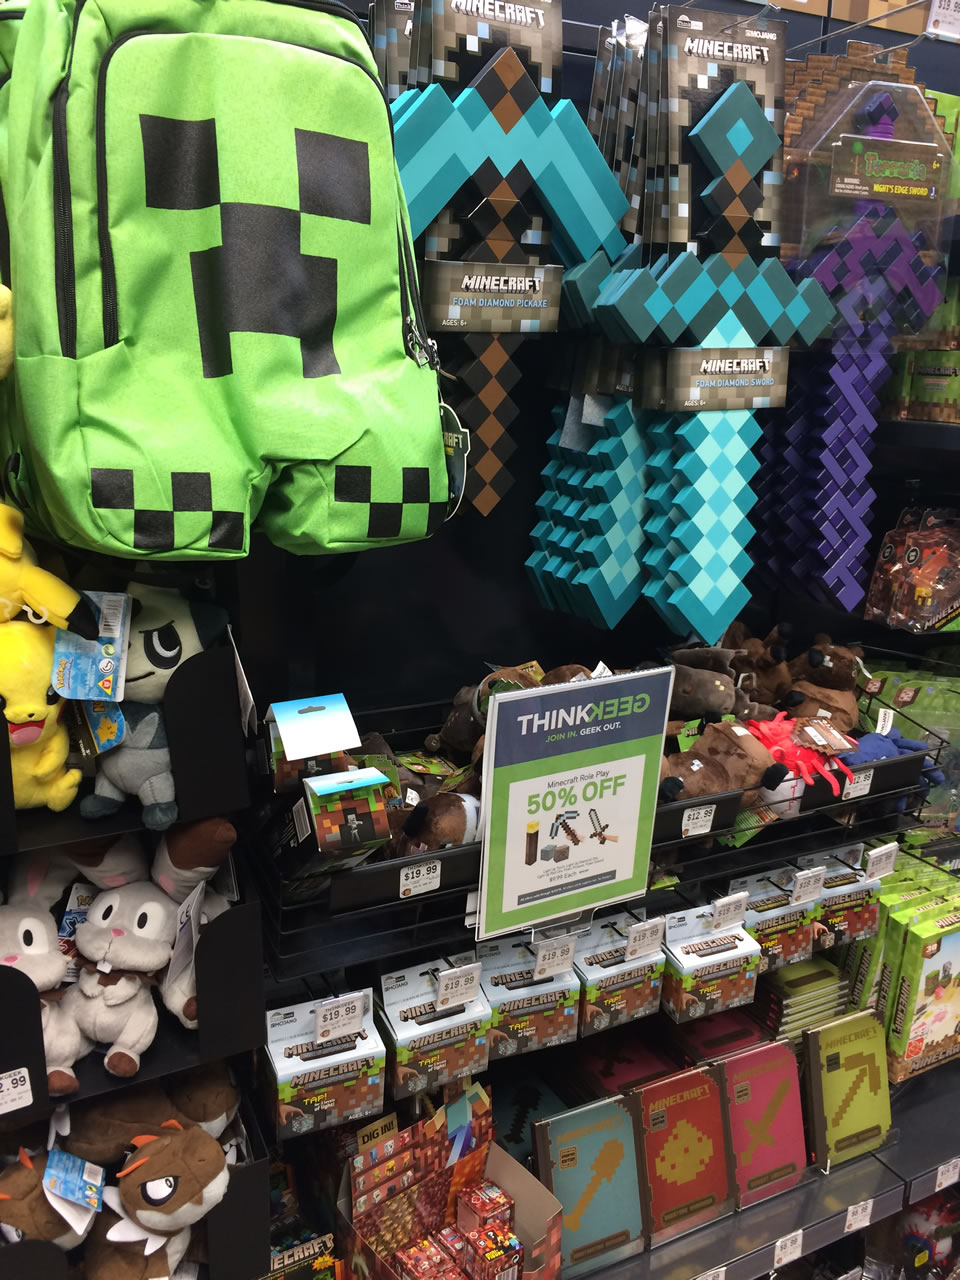 29 thinkgeek store - minecraft